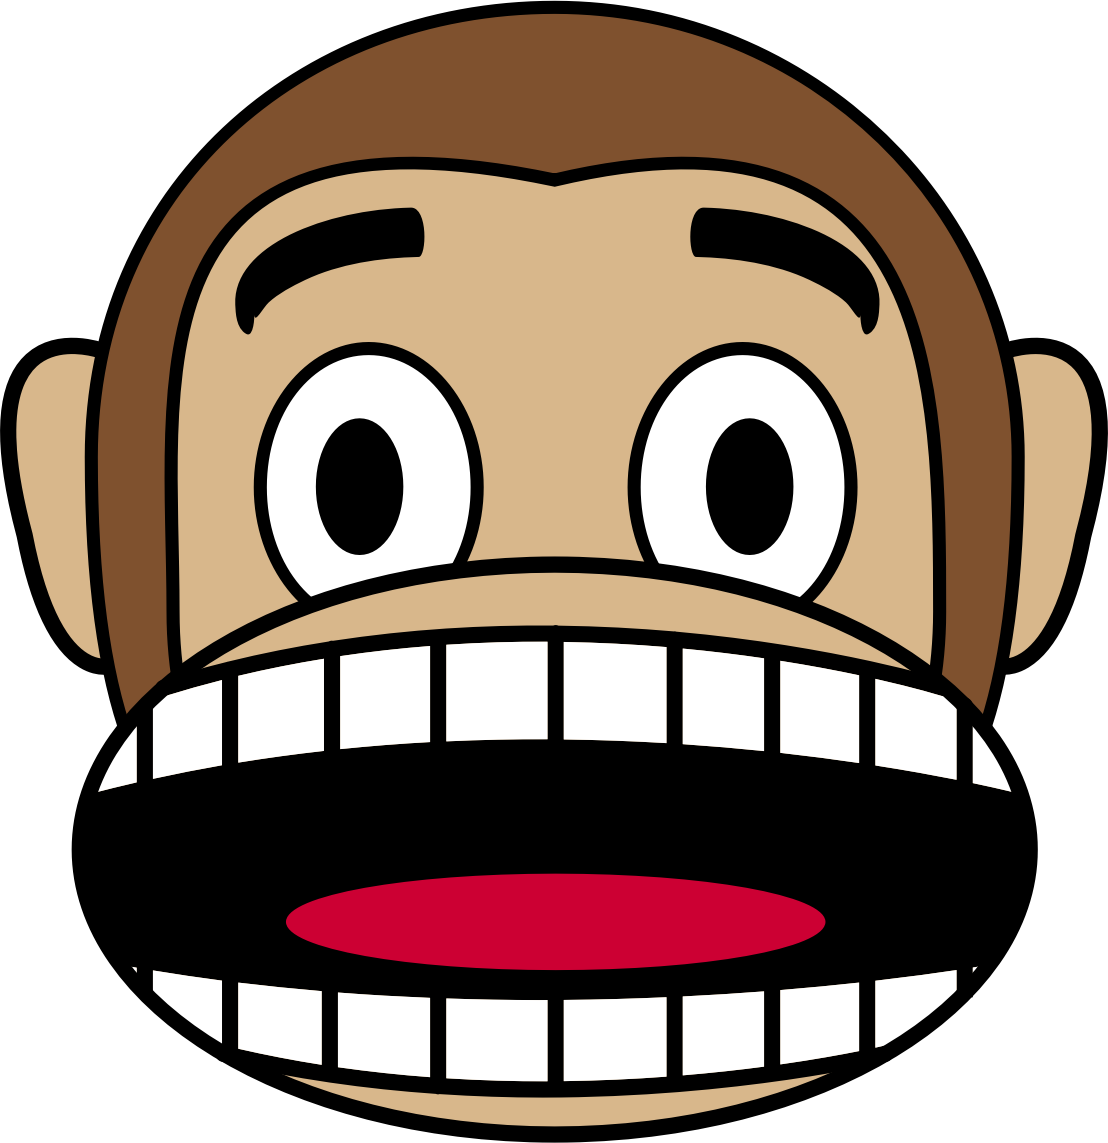 Monkey Emoji - Fearful by buzzbomb